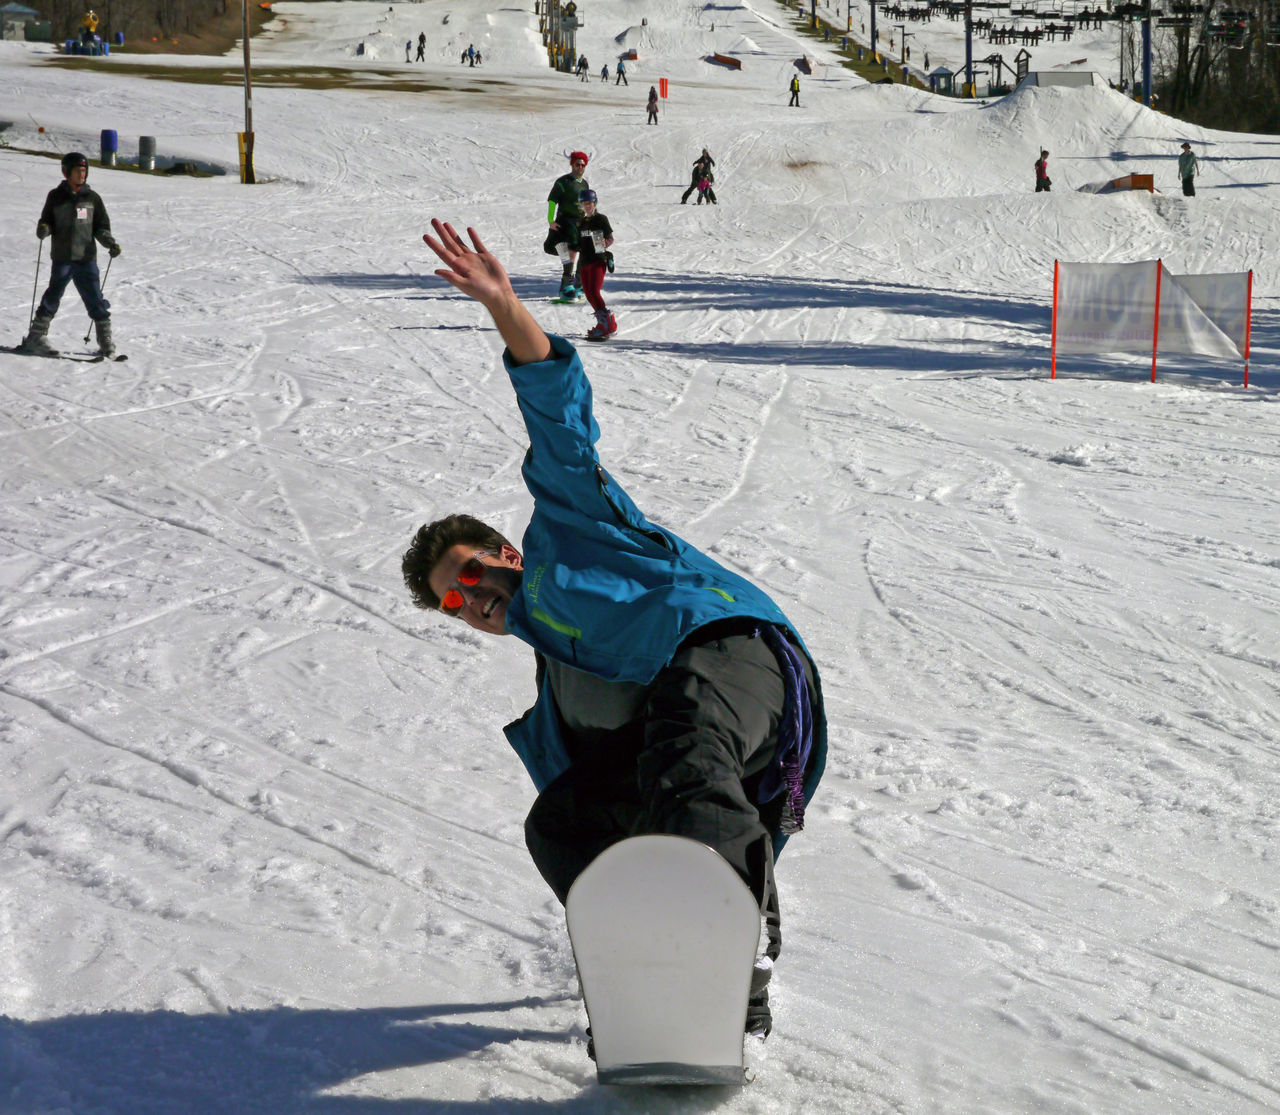 winter, snow, cold temperature, leisure activity, winter sport, sport, skiing, real people, field, day, fun, full length, outdoors, activity, skill, warm clothing, vacations, ski holiday, playing, lifestyles, nature, childhood, snowboarding, people, one person, ice rink, adult, adults only